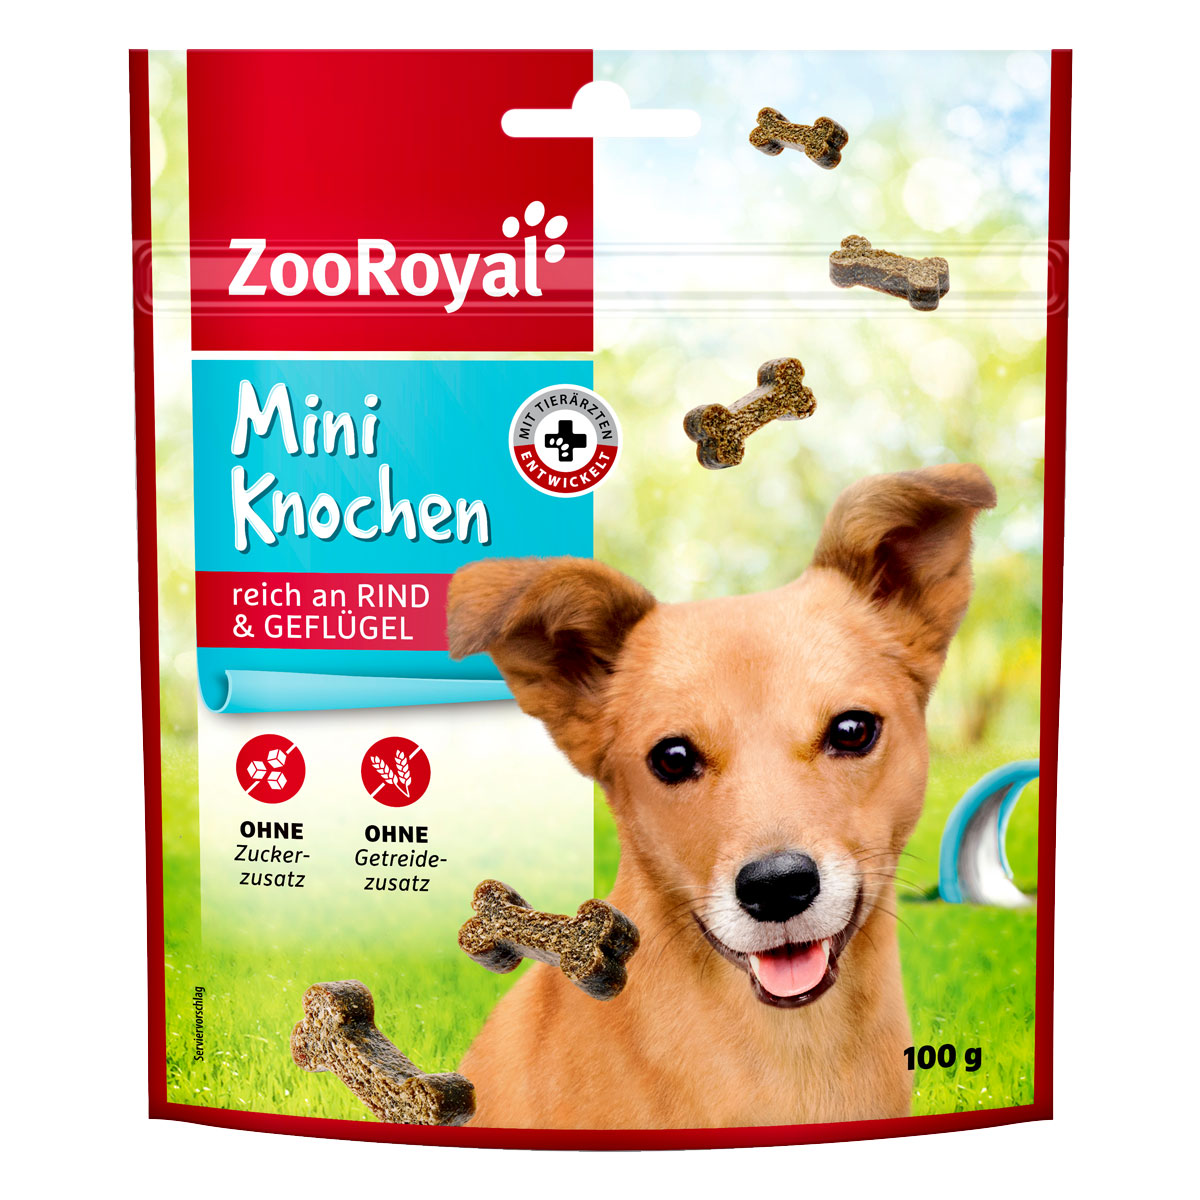 zooroyal hundesnack mini knochen mit rind gefl gel 100g. Black Bedroom Furniture Sets. Home Design Ideas